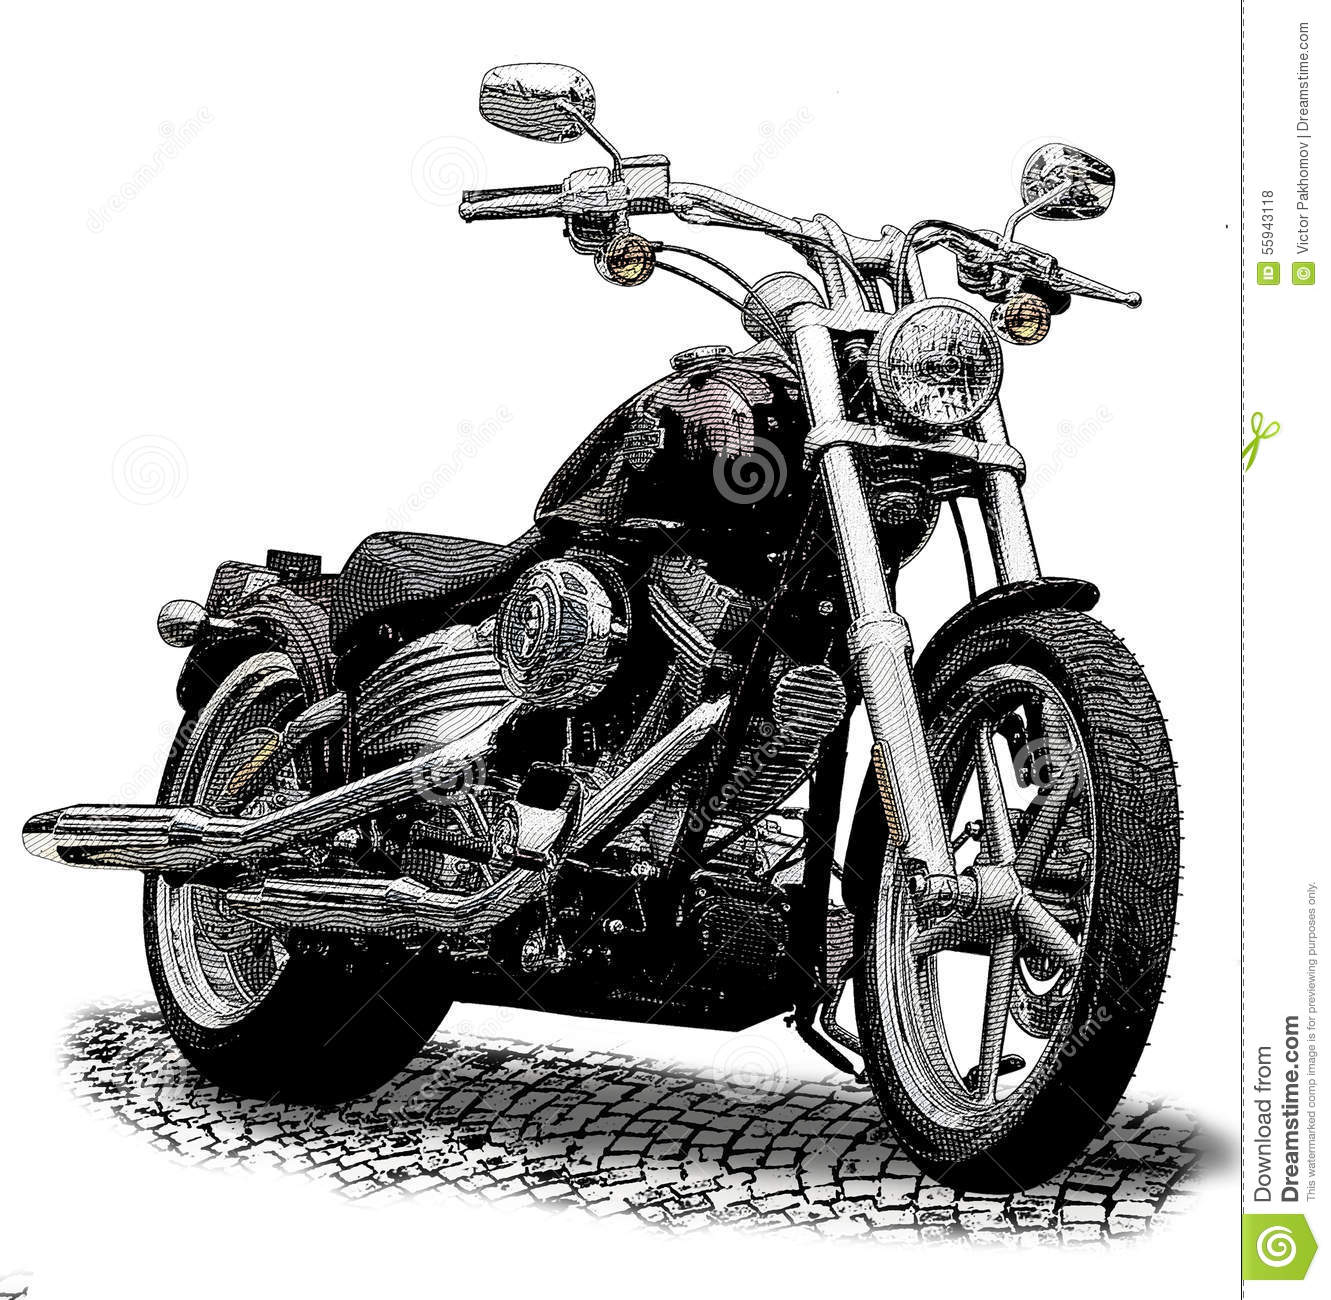 motorcycle stock illustration image 55943118. Black Bedroom Furniture Sets. Home Design Ideas